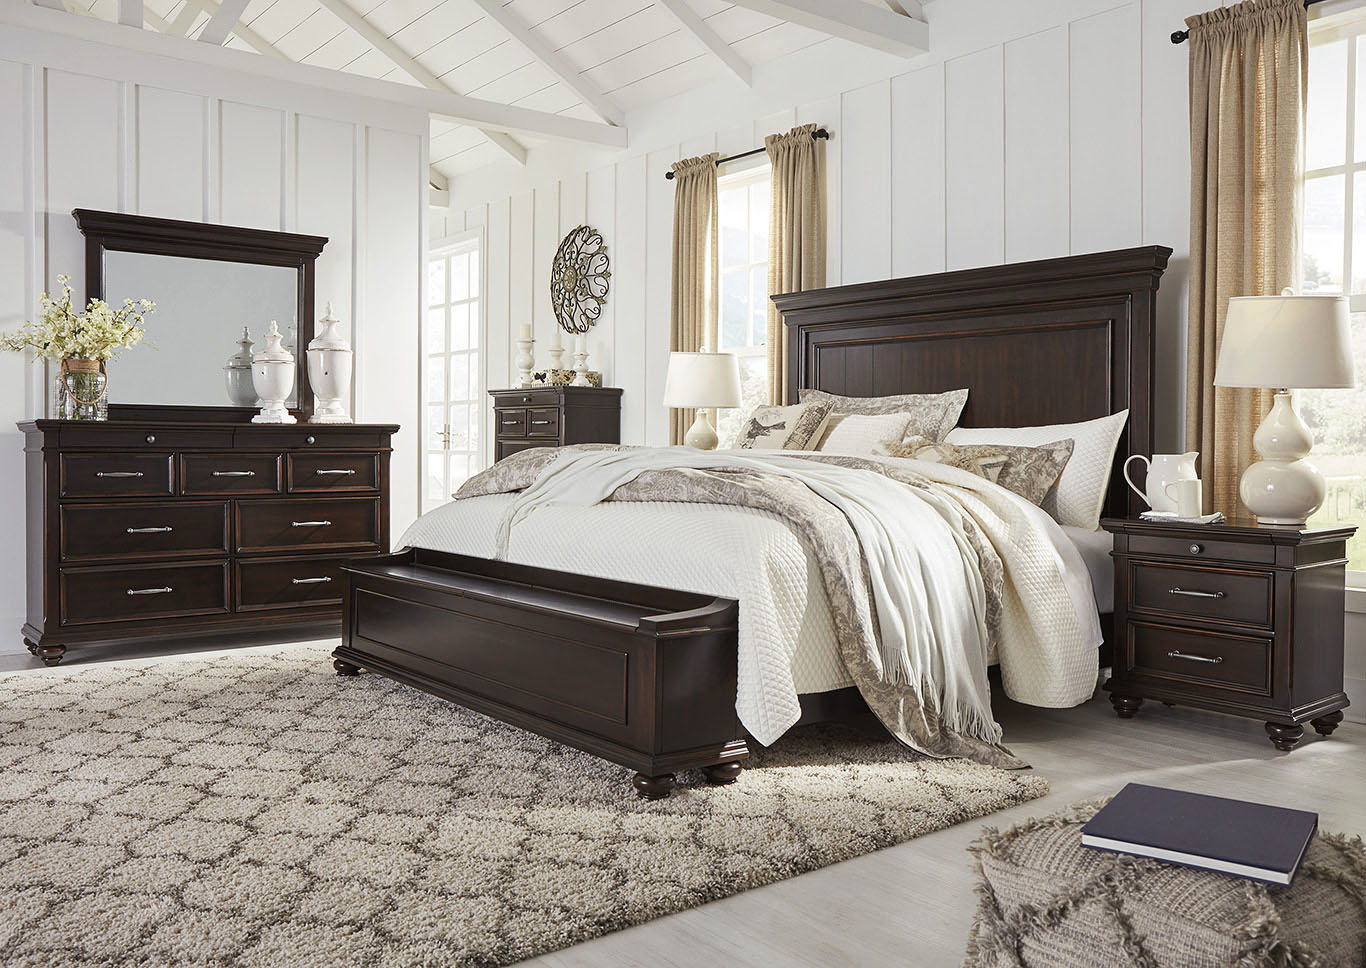 Brynhurst Brown California King Storage Bed Dresser w/Mirror,Signature Design By Ashley